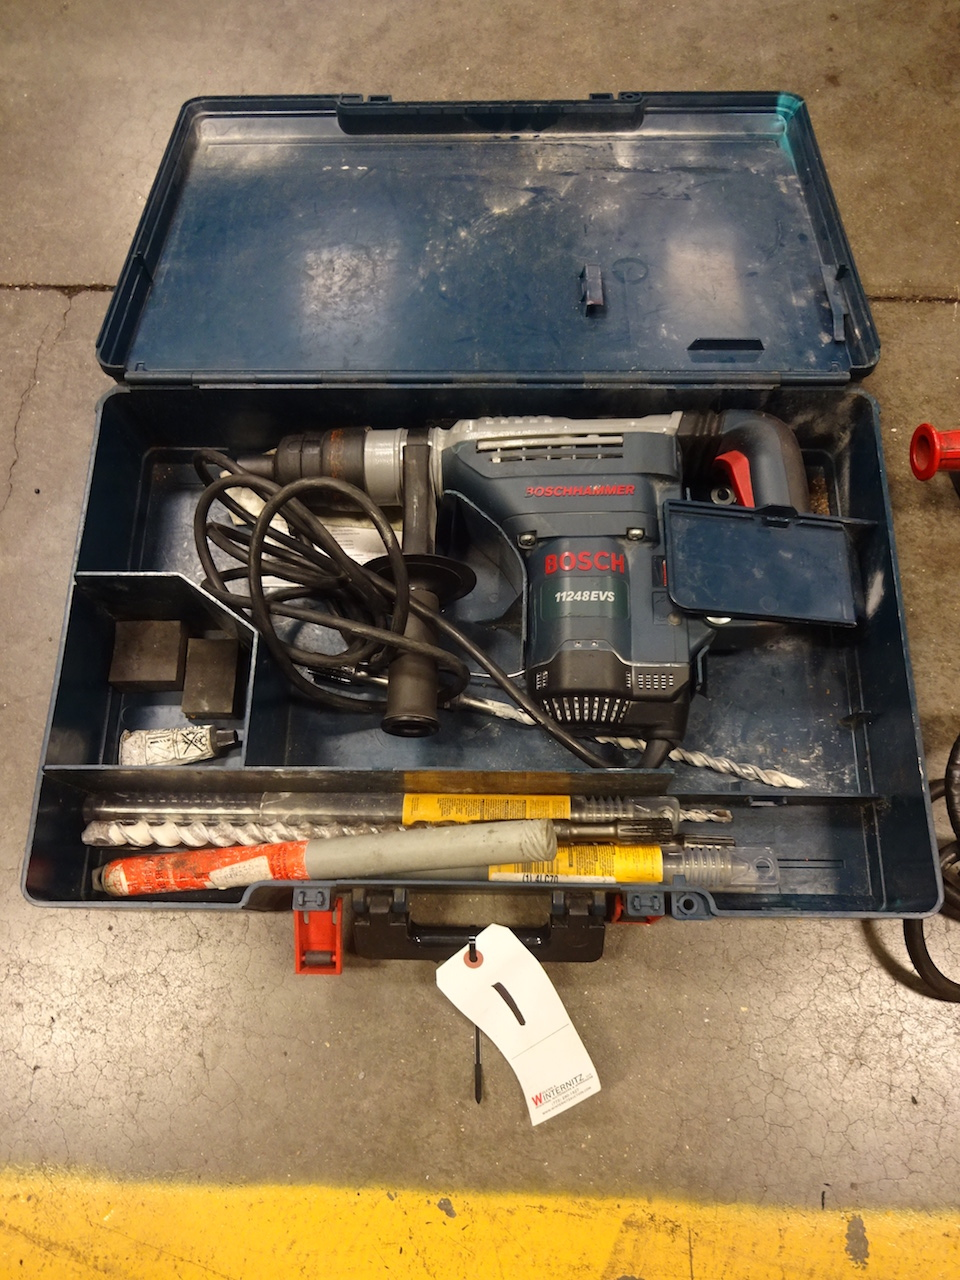 Lot 1 - Bosch Model 11248EVS Boschhammer Hammer Drill, S/N 15M-019179